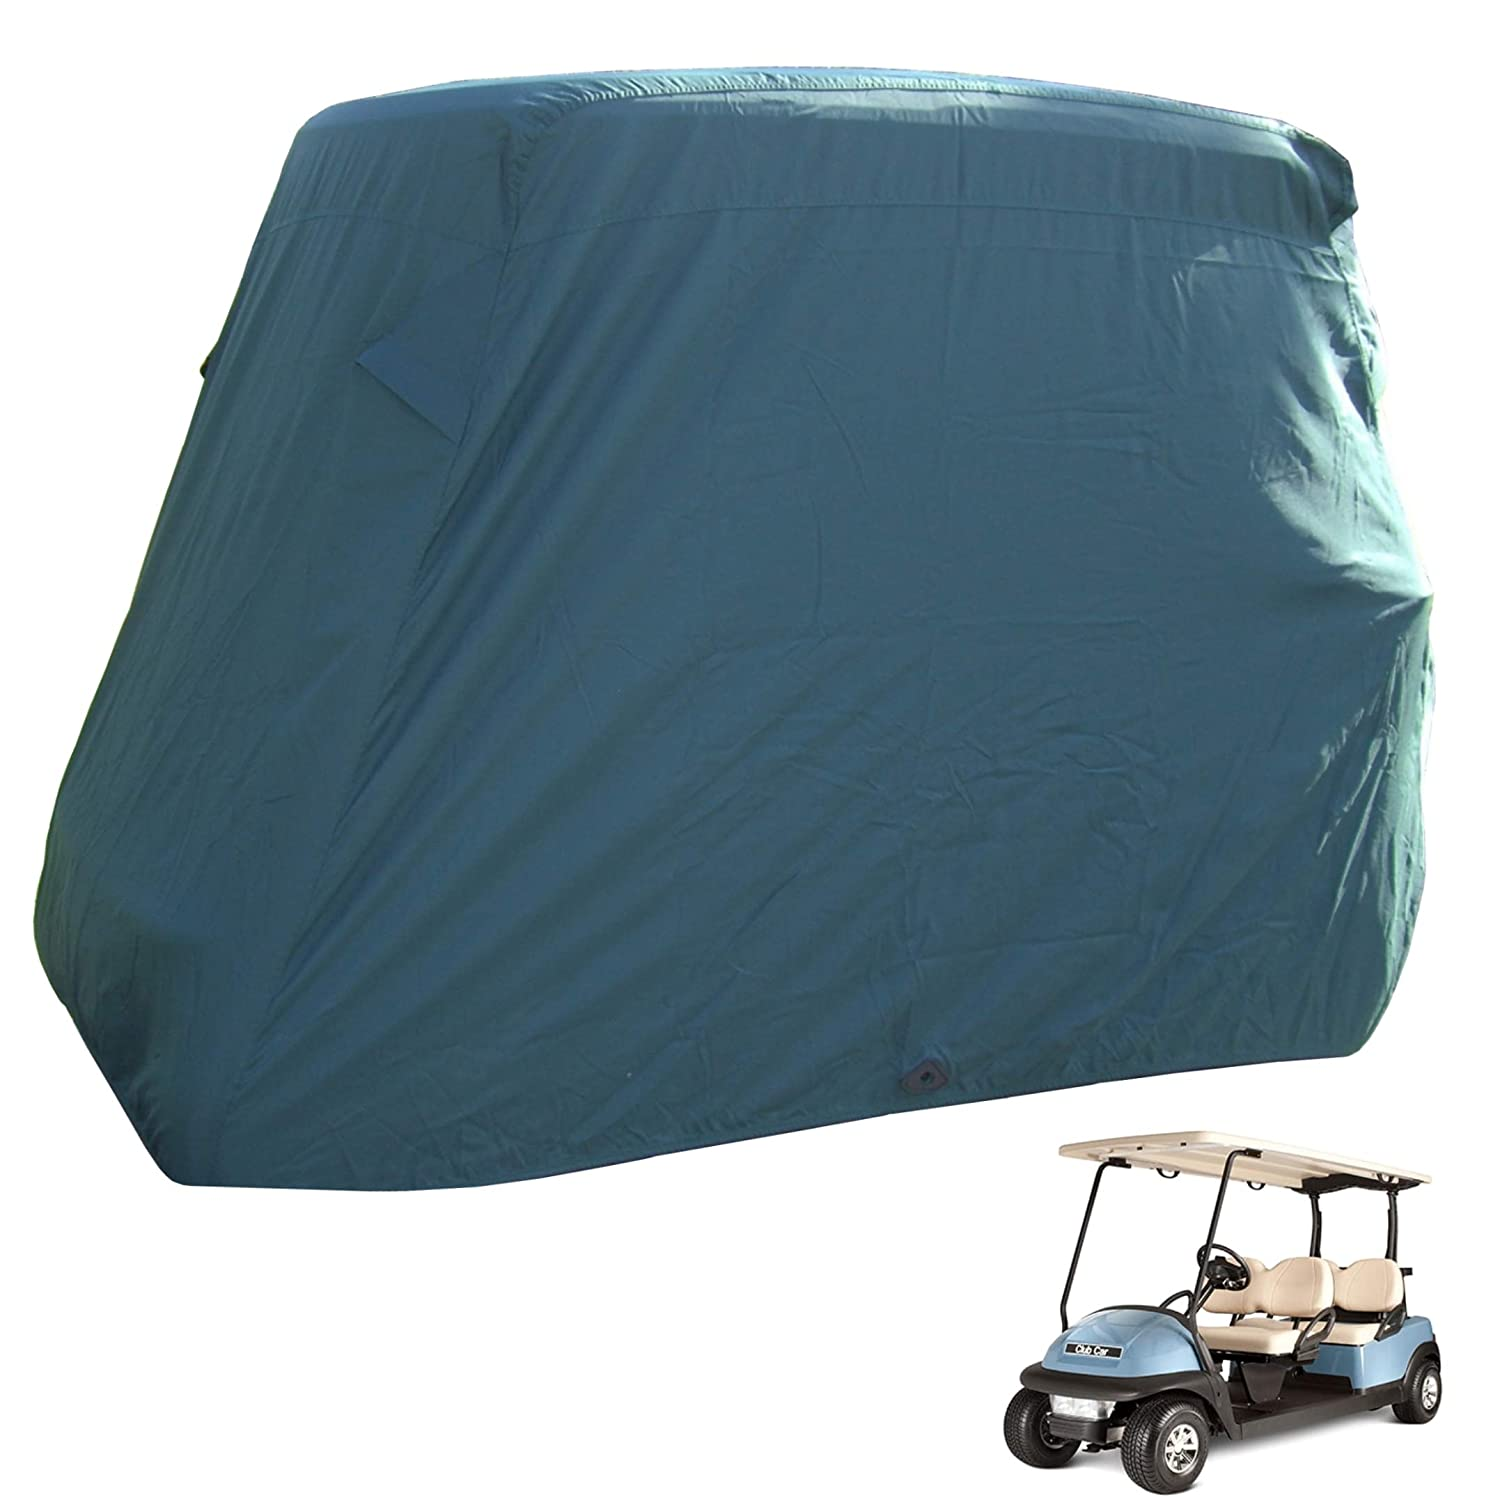 Deluxe 4 Seater Golf Cart Cover roof 80